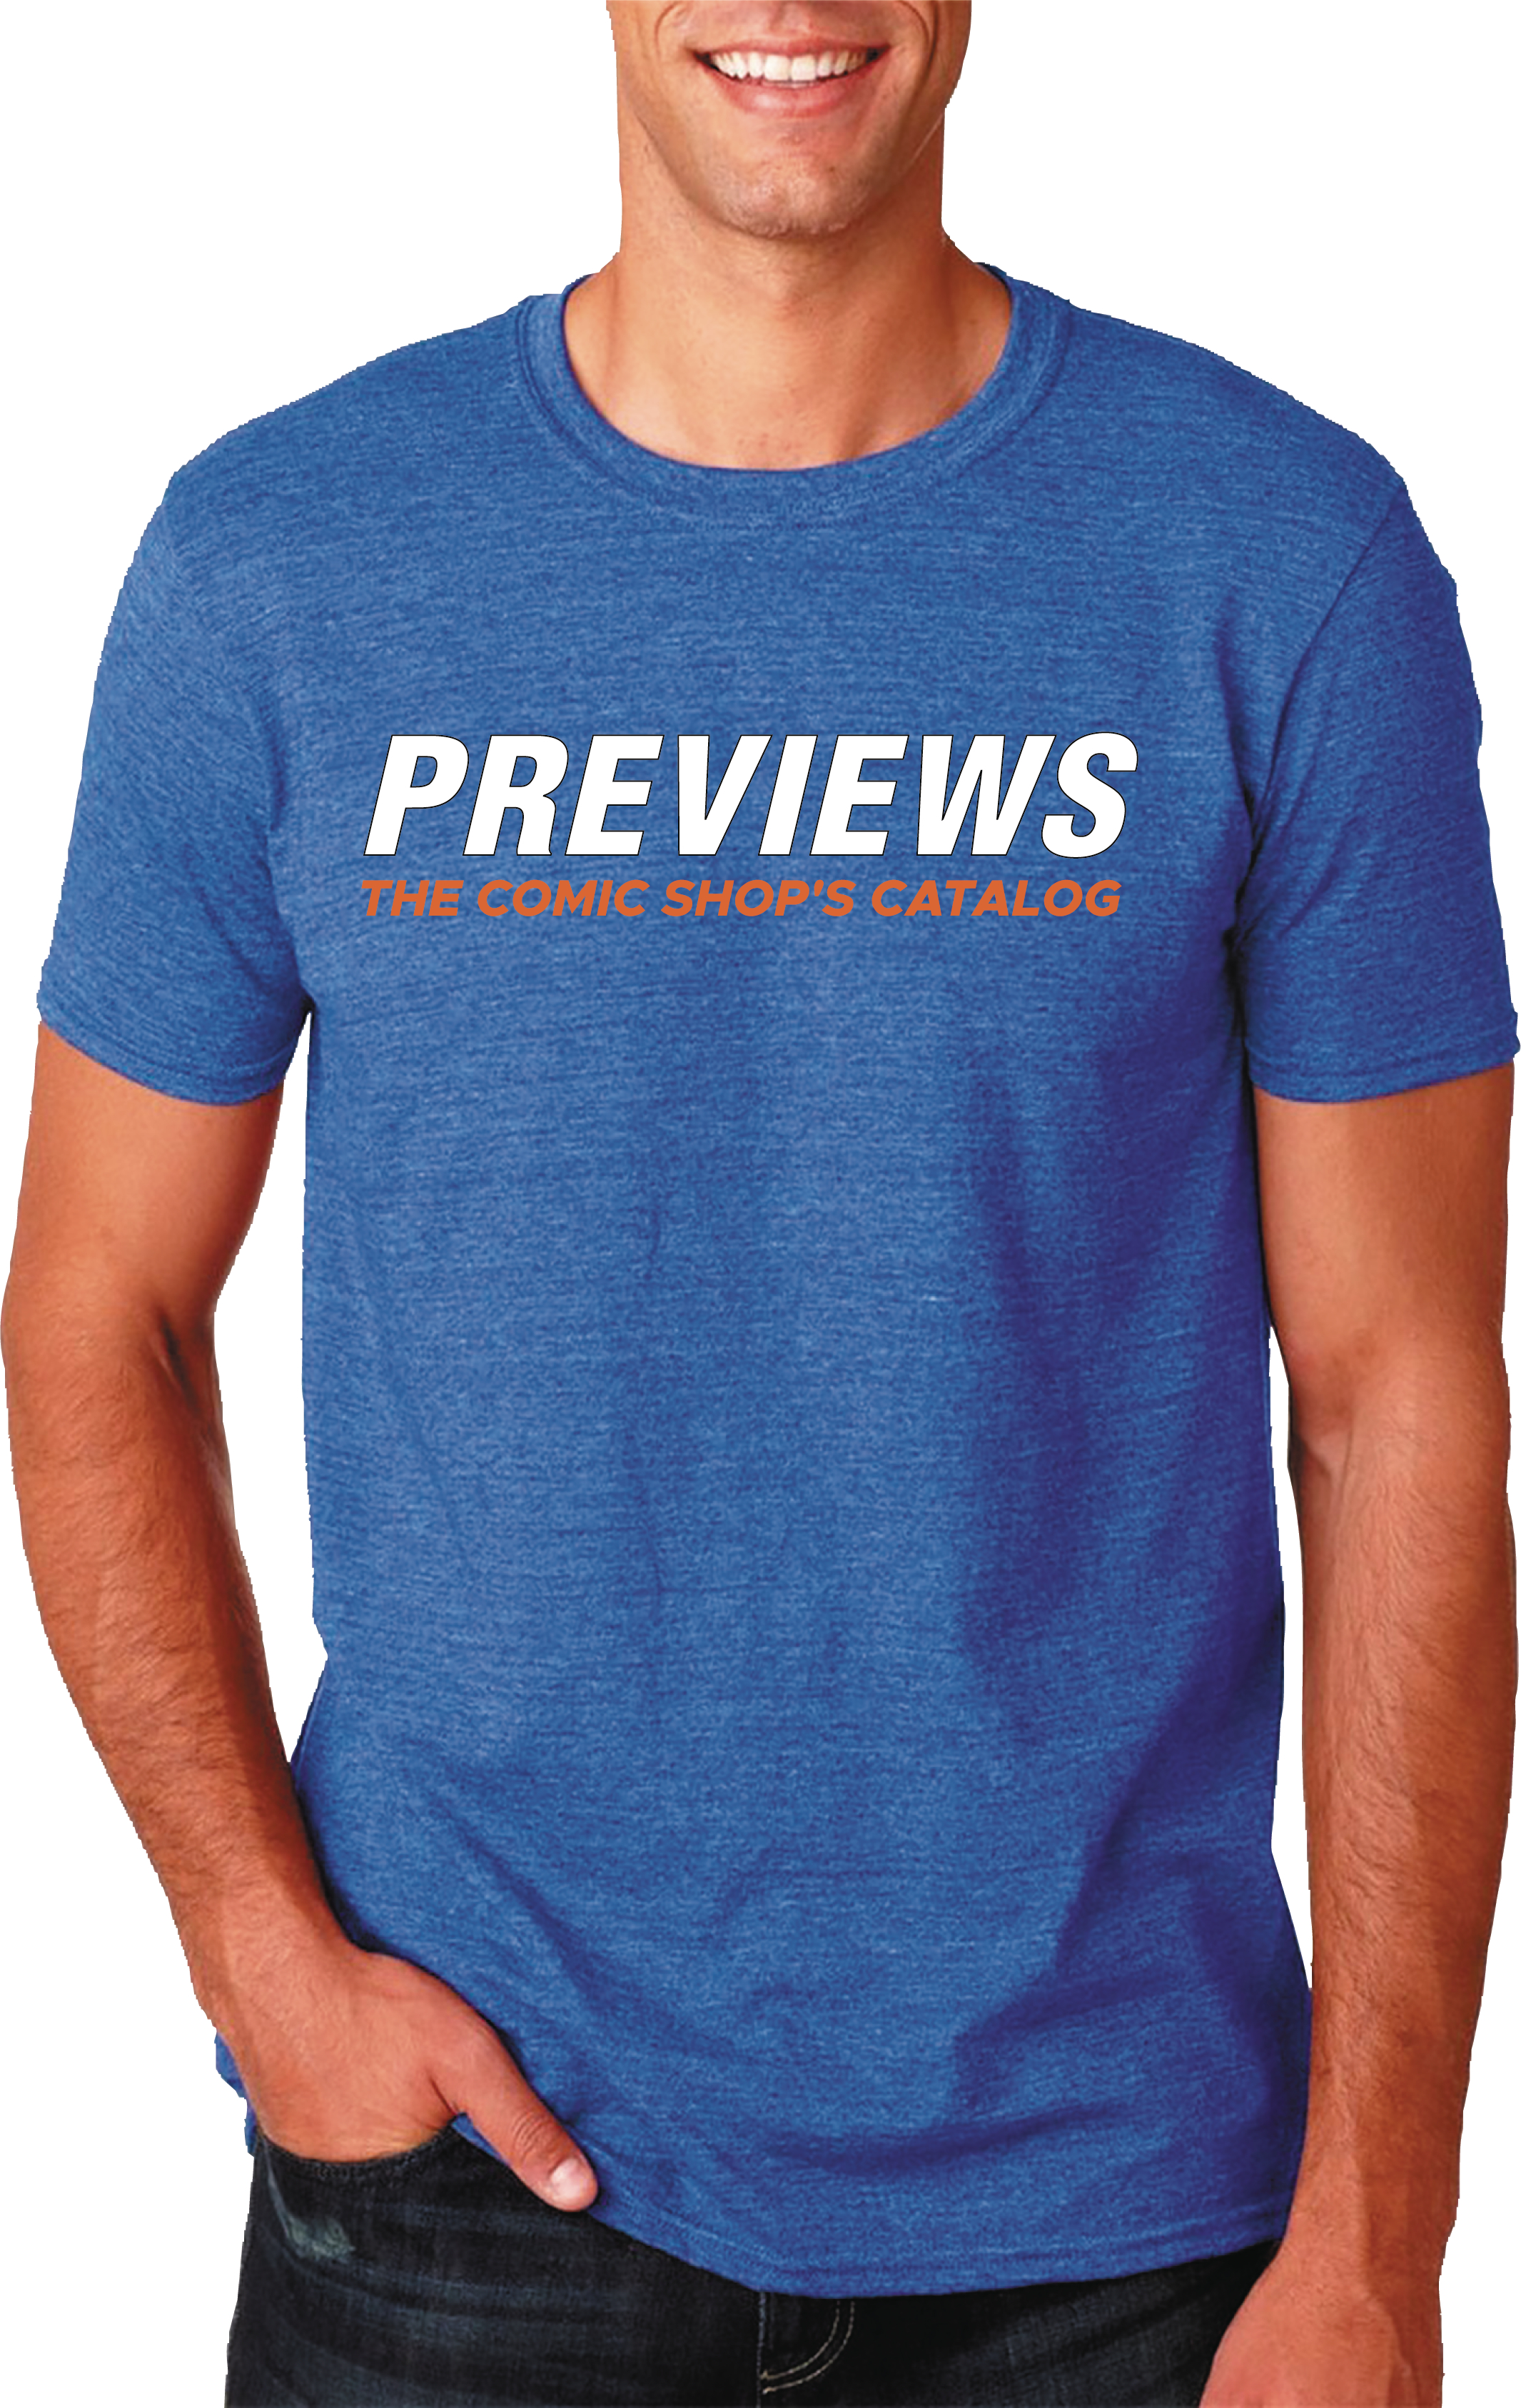 PREVIEWS LOGO HEATHER BLUE T/S XXXL